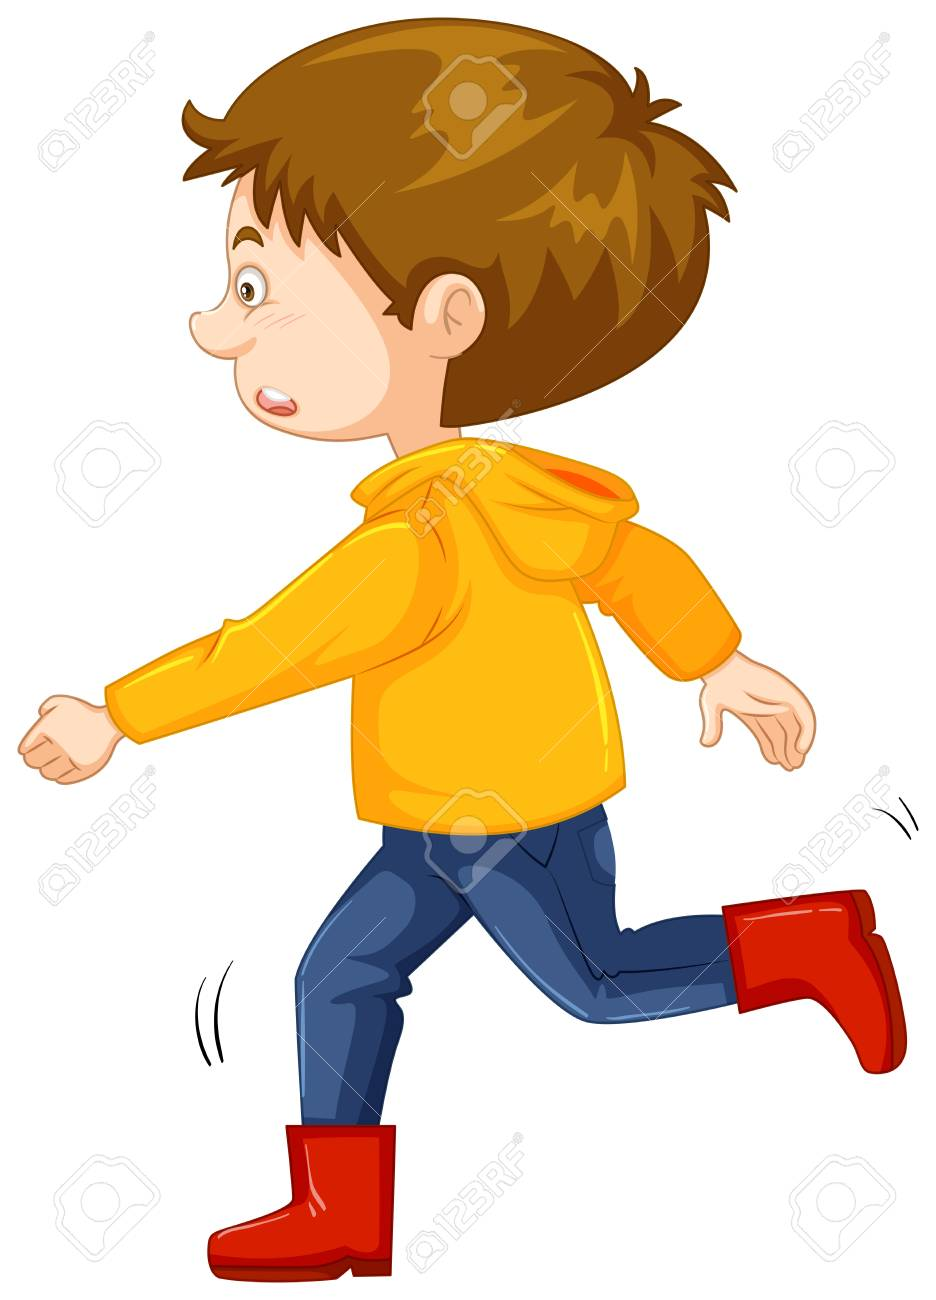 A Little Boy In A Yellow Jacket With Hood And Red Boots Cartoon